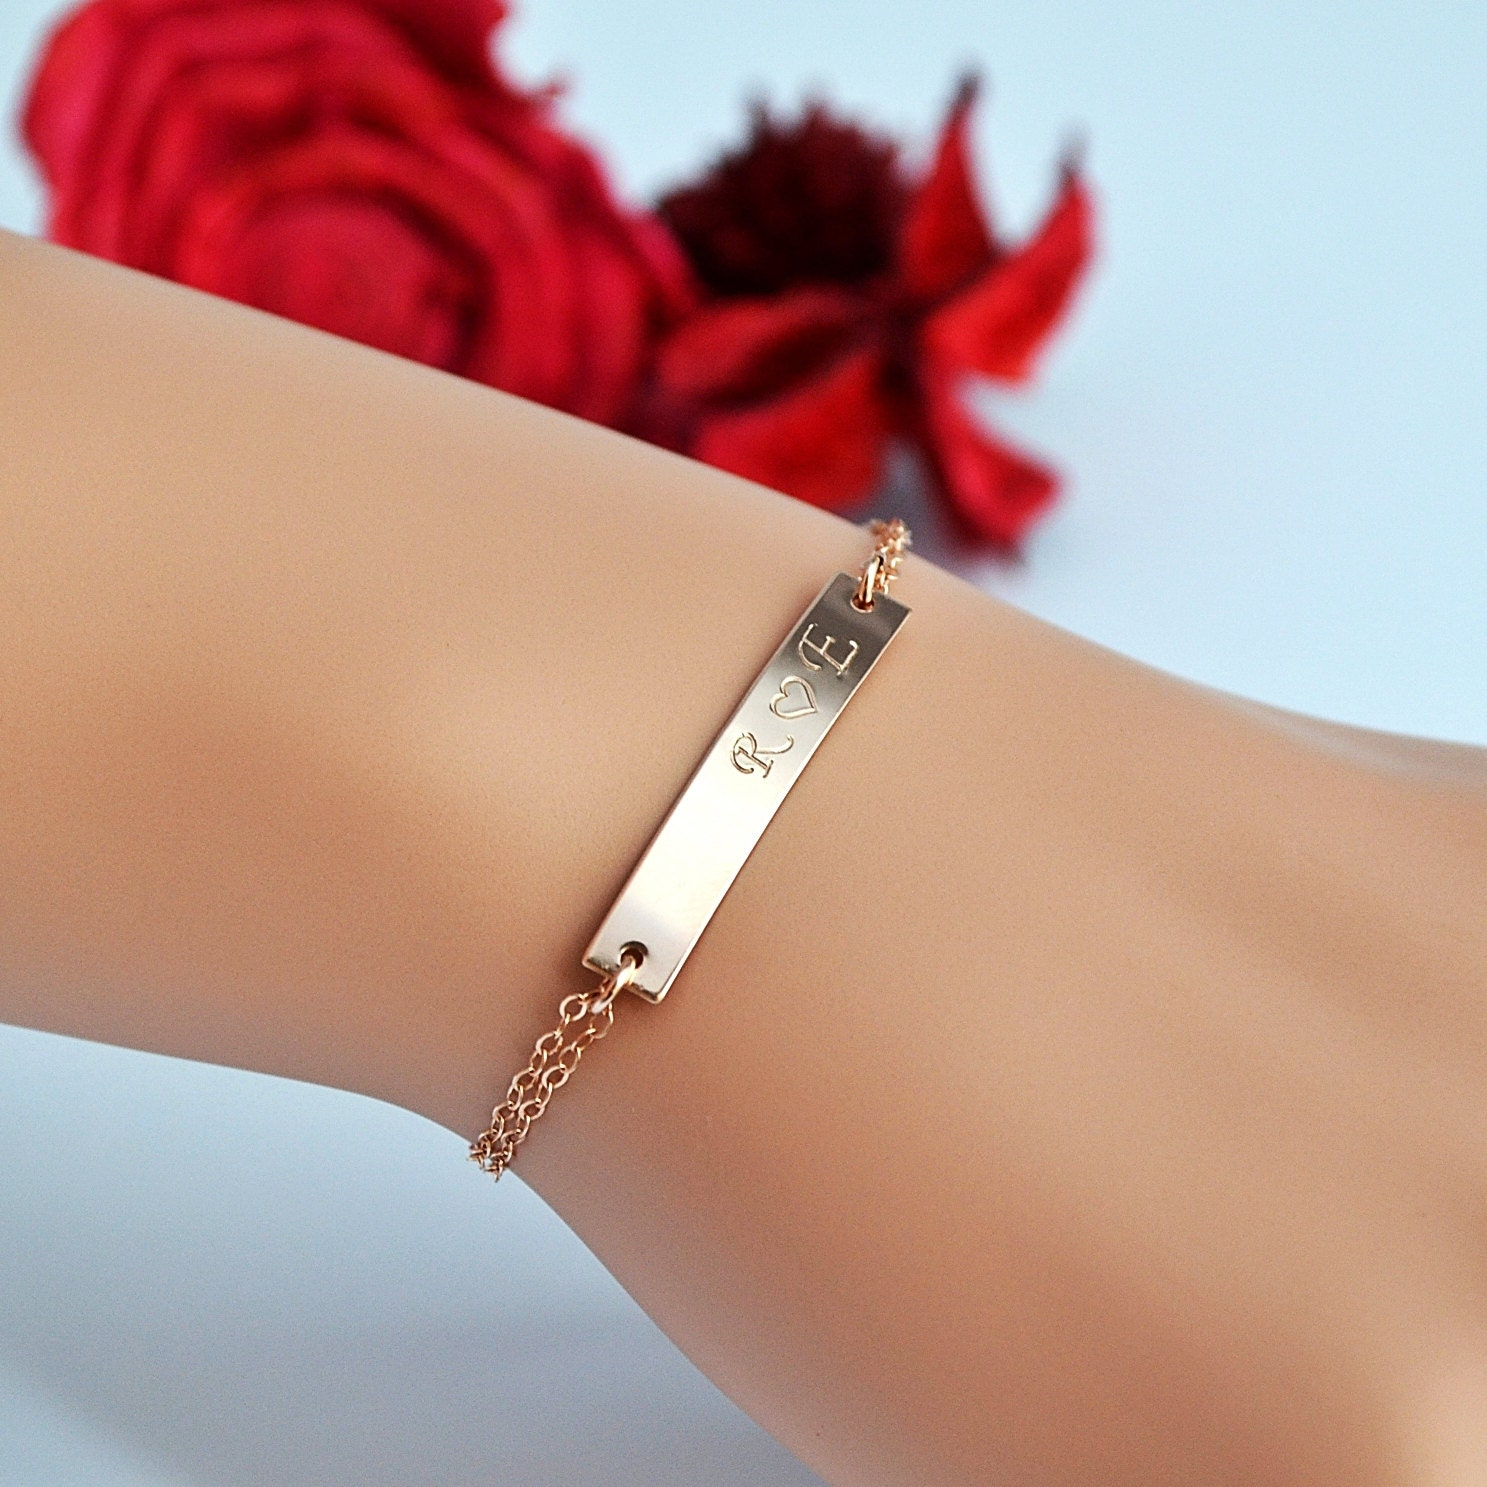 bar bracelet solid gold products simple yellow engraved id edited name personalized hoardjewelry